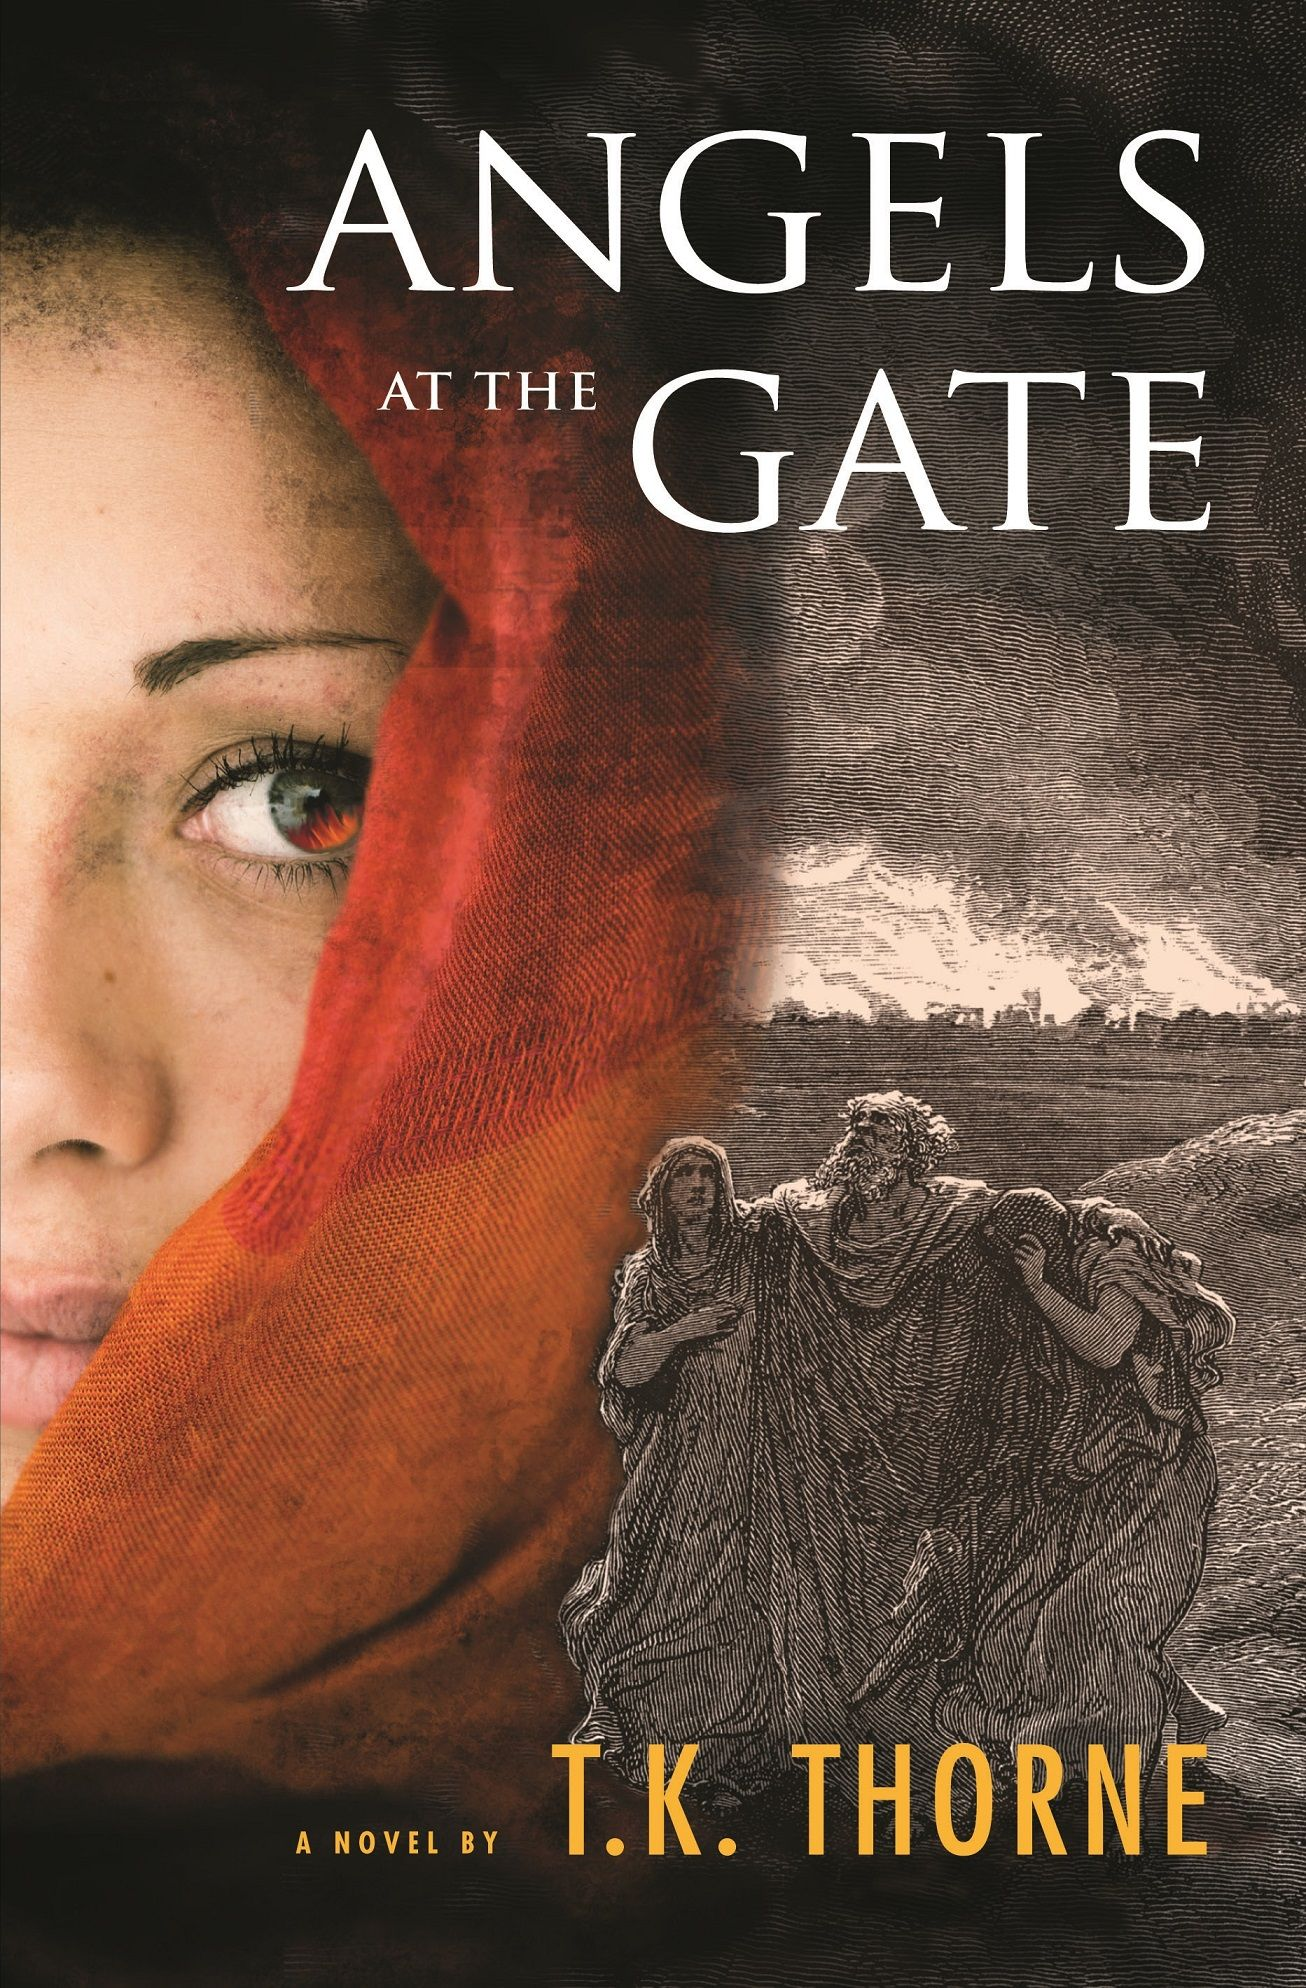 Angels at the Gate by T. K. Thorne Book Cover